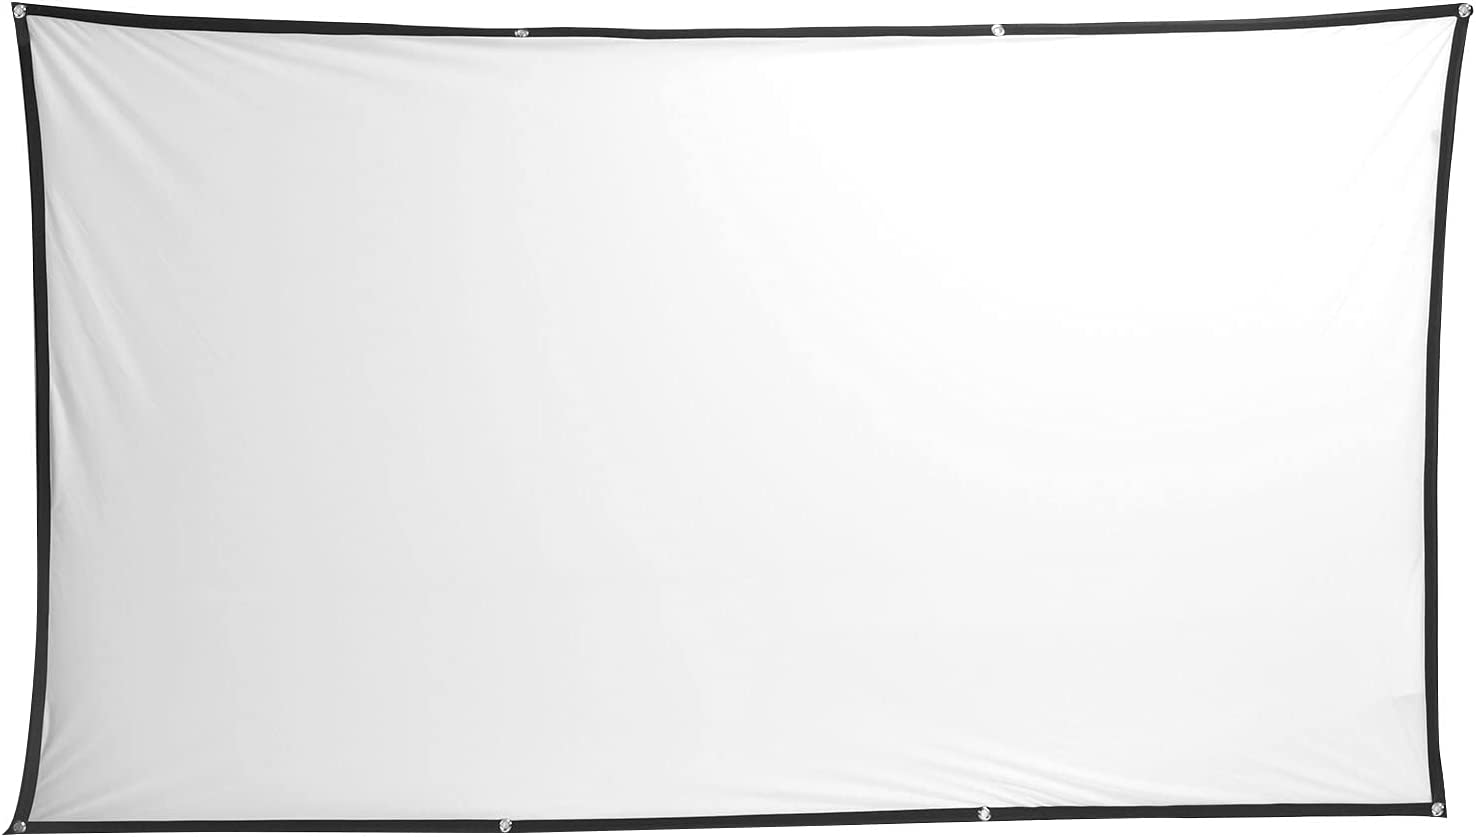 Projection Movies Screen, Mini White Projector Screen Polyester 160-degree Viewable Range for Office for Home(150 inches (330187cm))